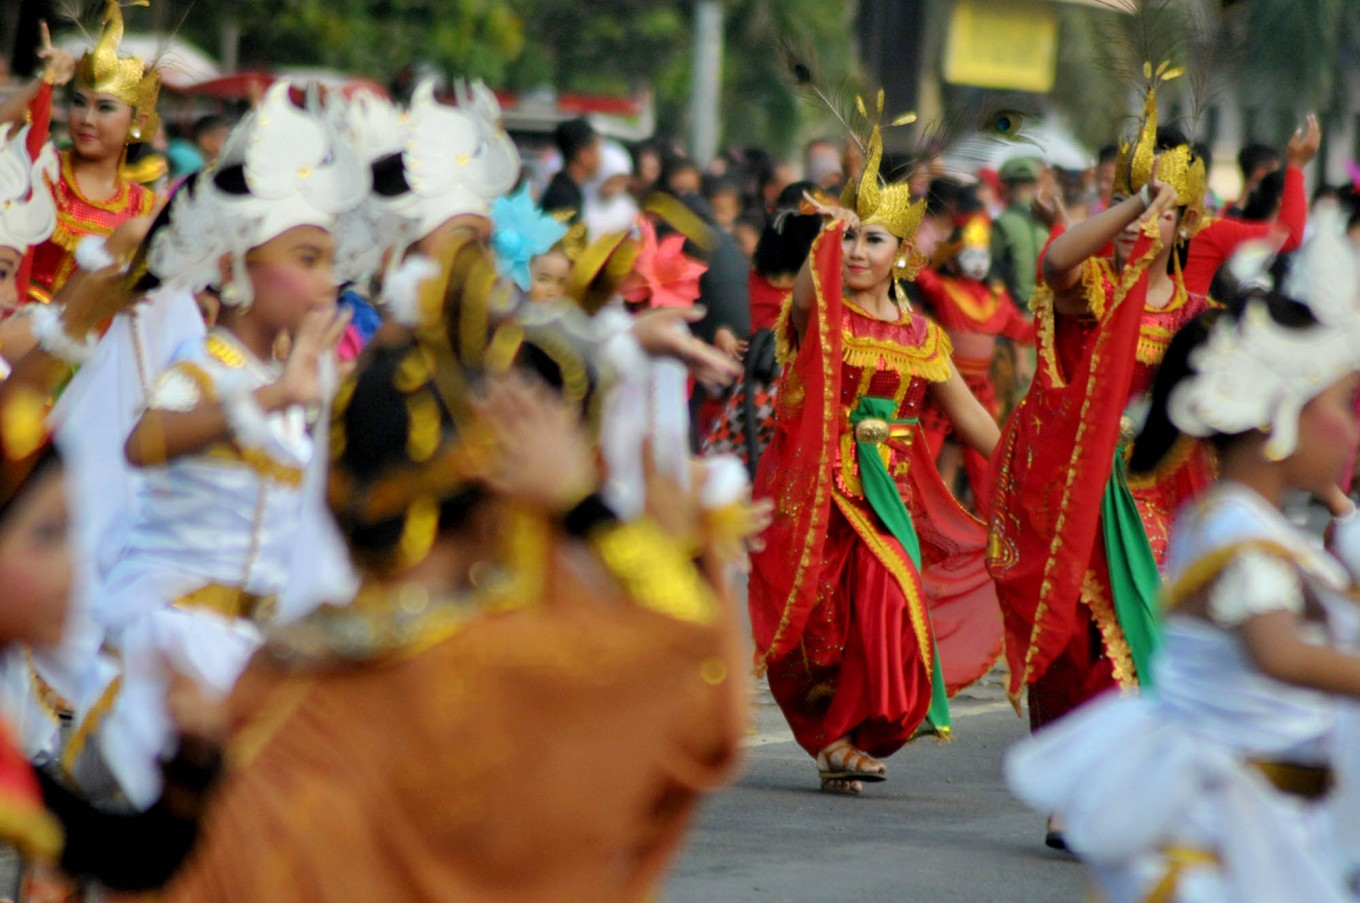 Thousands to participate in International Dance Day in Surakarta